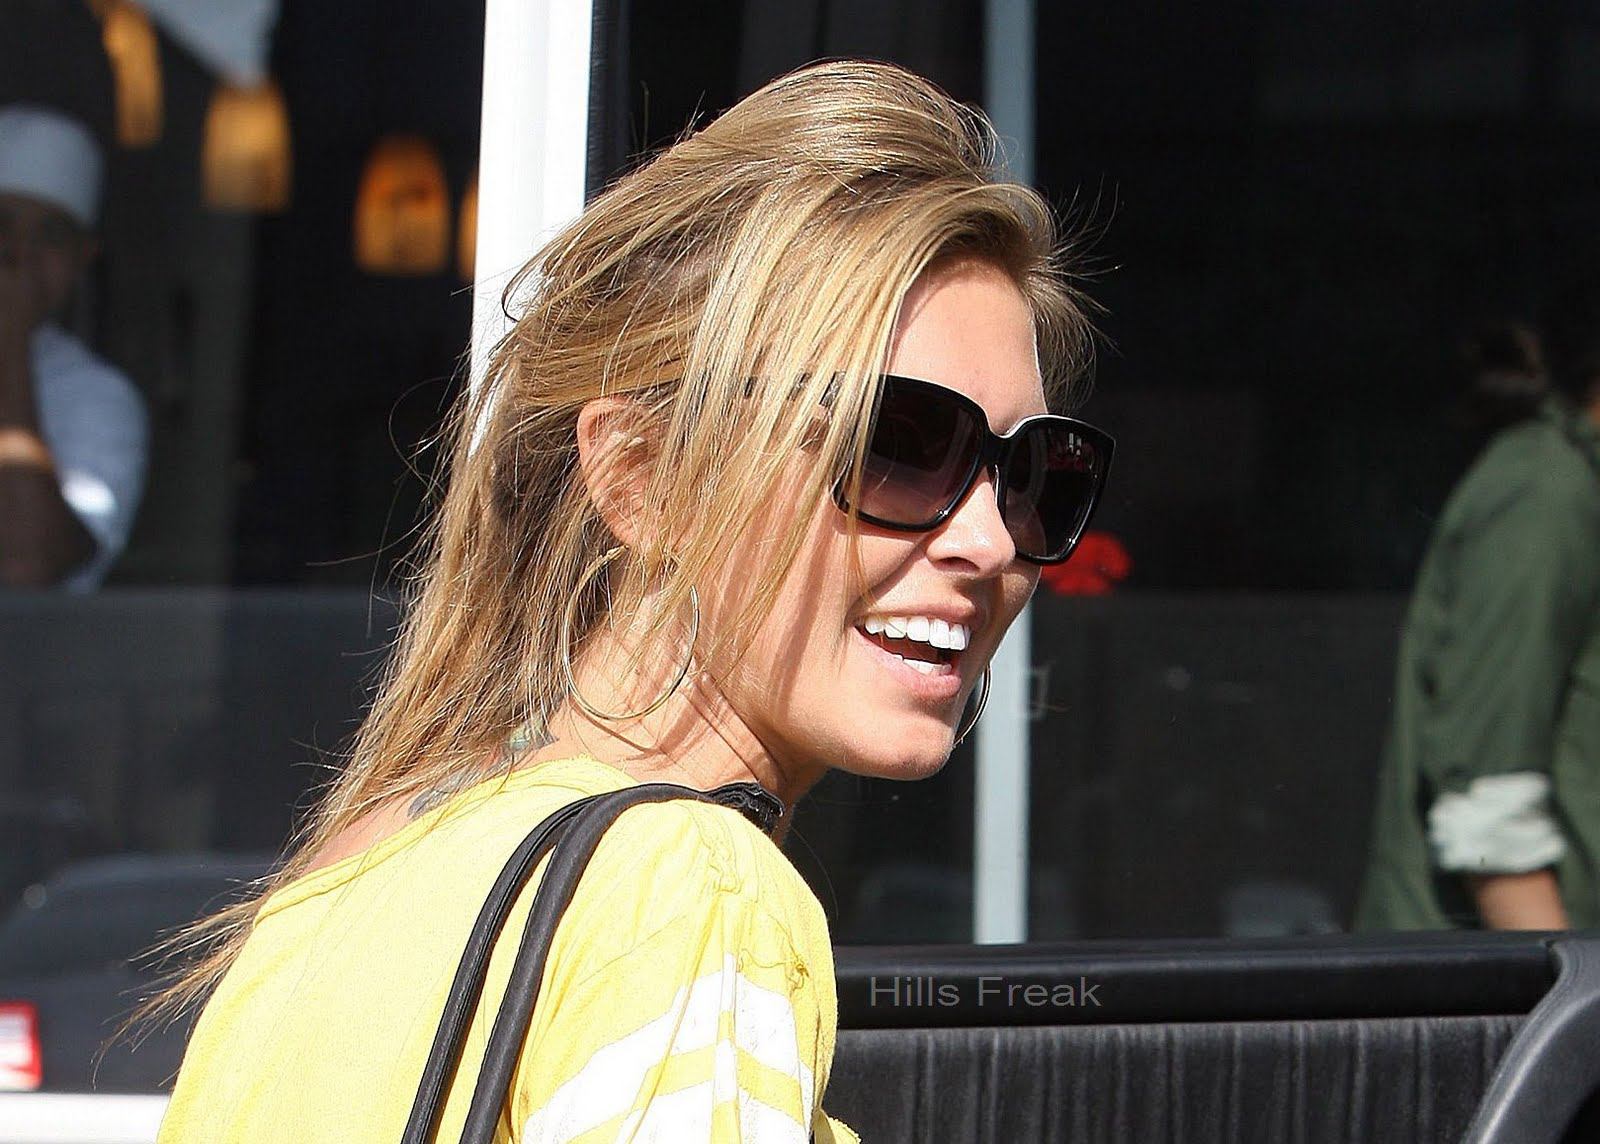 jodriart: Audrina Patridge and Lady ( Her Teacup Yorkie) Leaving the ...